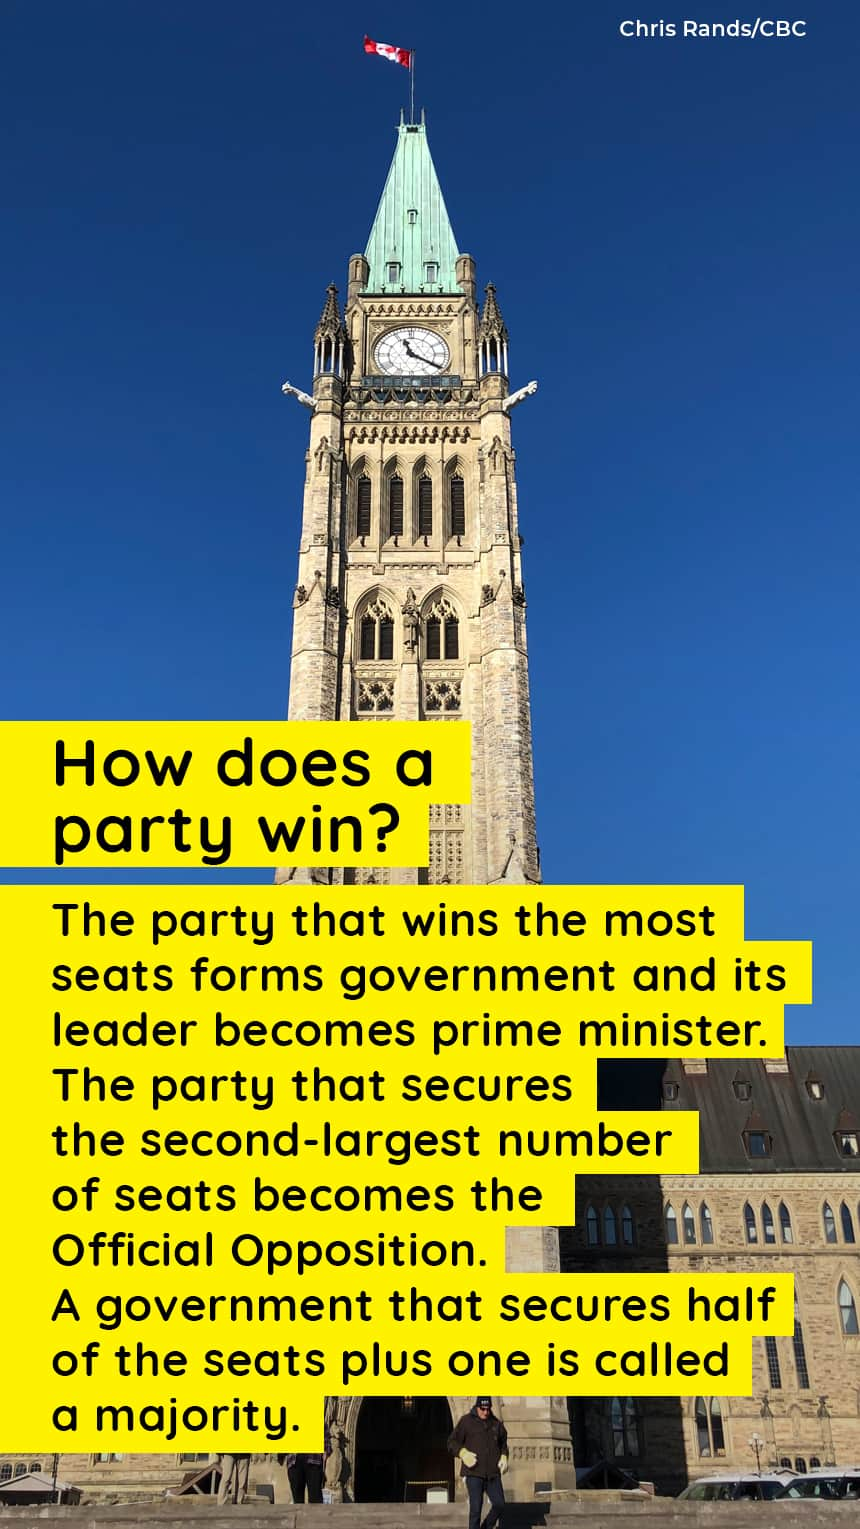 An image of Parliament Hill with text that says, How does a party win? The party that wins the most seats forms government and its leader becomes prime minister. The party that secures the second-largest number of seats becomes the Official Opposition.A government that secures half of the seats plus one is called a majority.